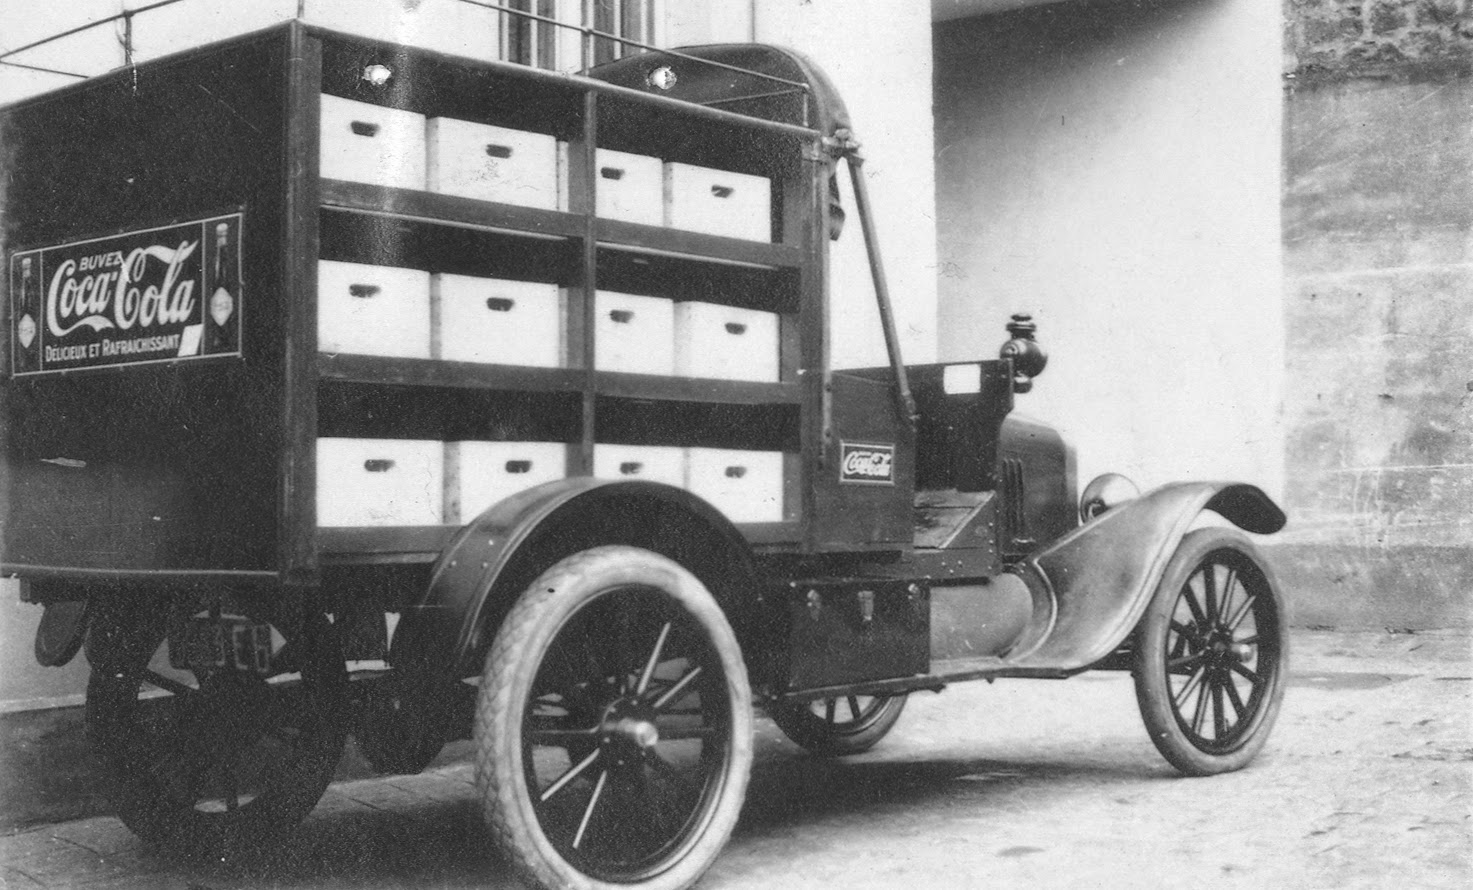 Vintage Photos Of Ford Coca Cola Delivery Trucks From Between The 1941 Panel Truck This Model T And Body Cost 570 In 1921 First With A Special To Hold 24 Cases Eight More On Top When Required